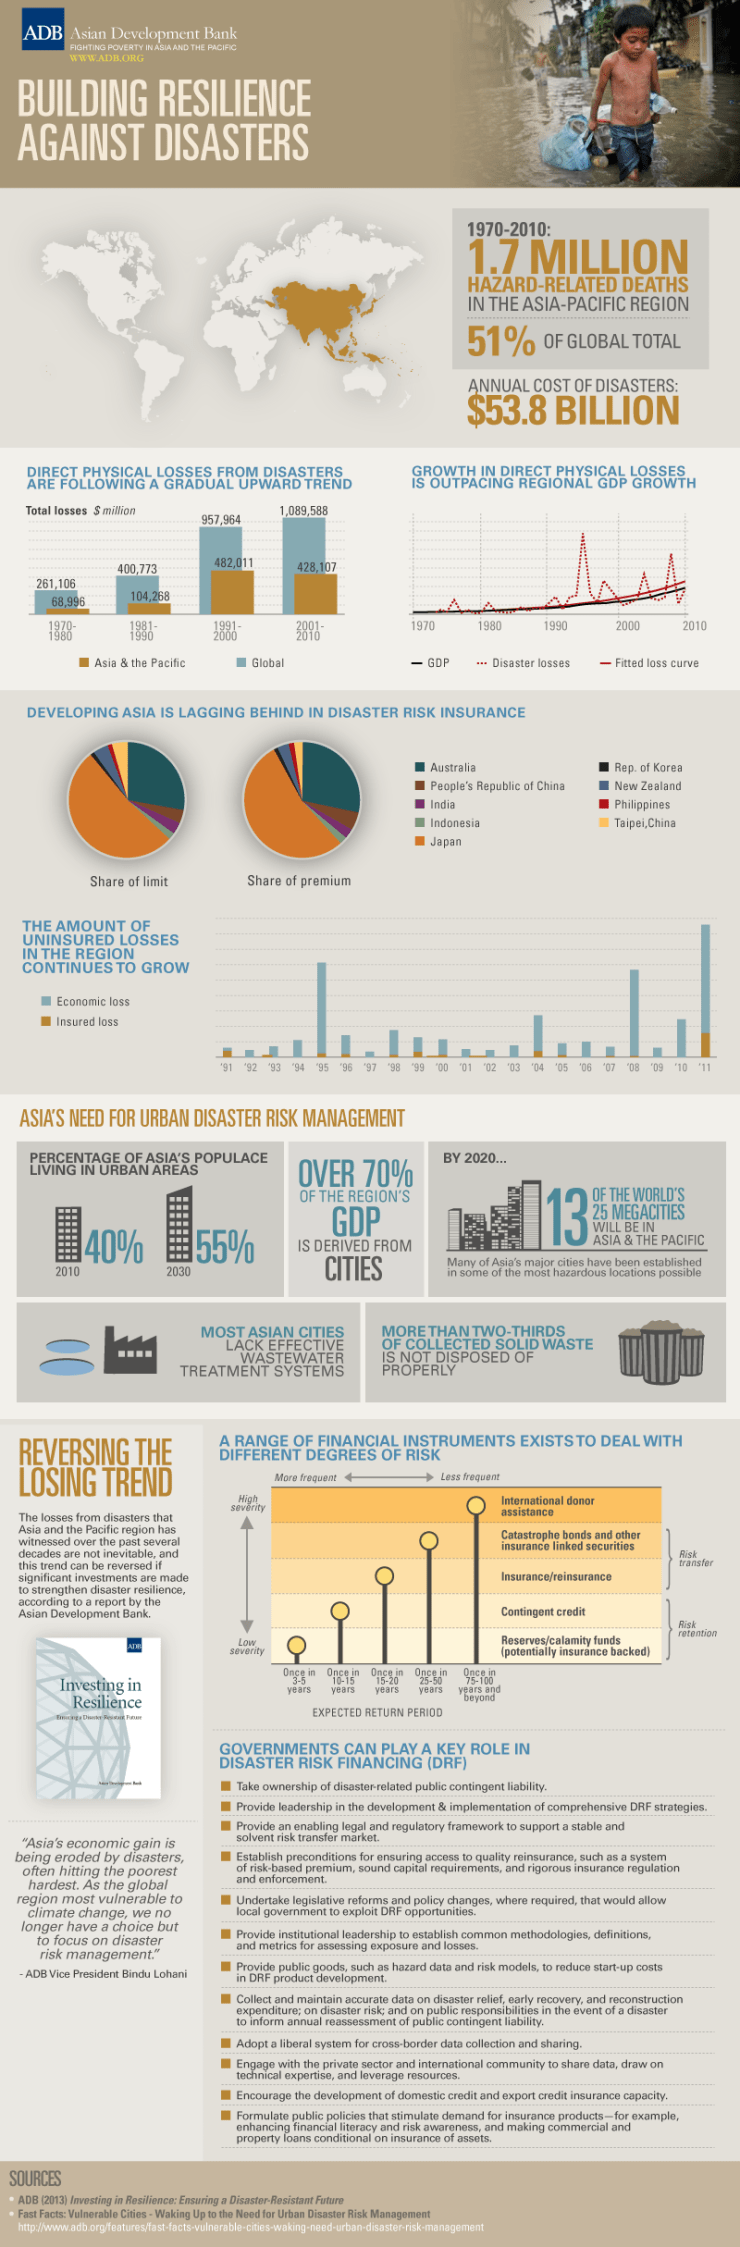 ADB-infographic-asia-disaster-resilience